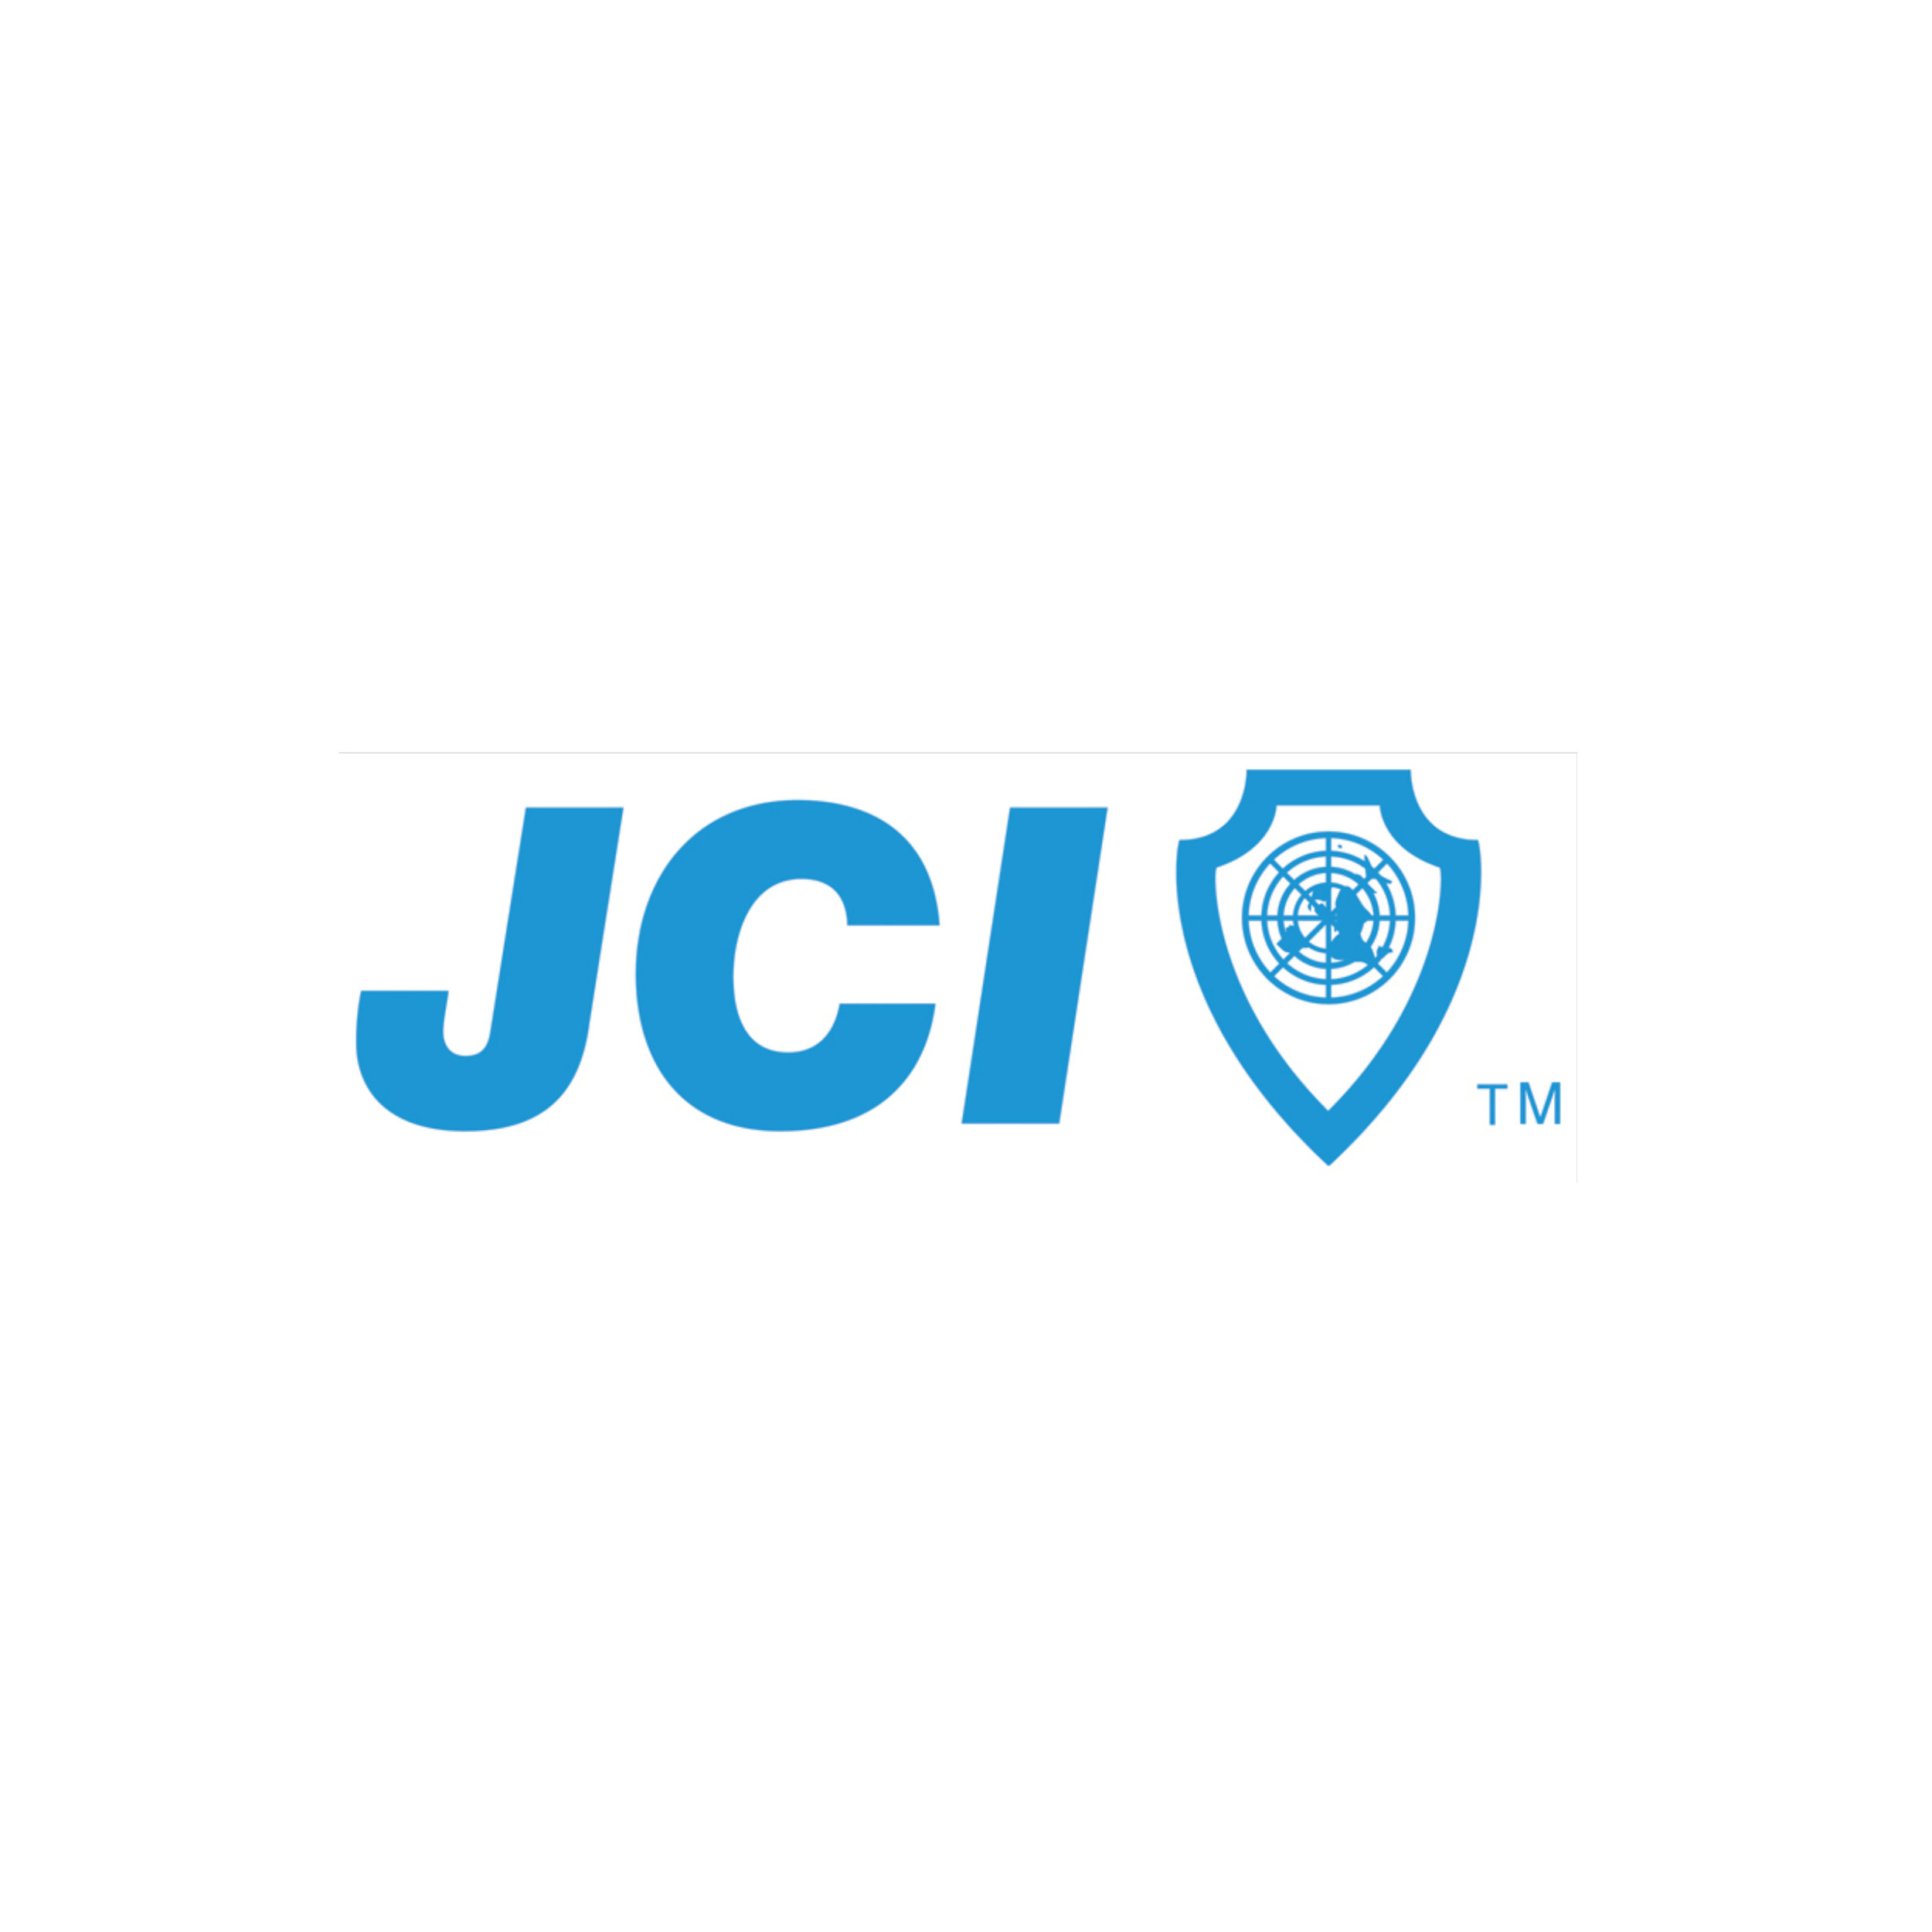 JCI  (Junior Chamber International), Years Committed: 7  JCI is a 100 year old international leadership development organization that is an official partner of the United Nations.  Served in the following roles: Diversity Advisory Board, Program Manager, Trainer, Training Advisory Board, President, and Board of Directors member.  Delivered training to groups at local, state, national and international events. Topics span leadership development, capacity building, building inclusive organizations, public speaking, United Nations Declaration of Human Rights, gender norms, Gender Equality, Racial Equity, United Nations SDGs, Bipartisan communication, leading diverse and international teams